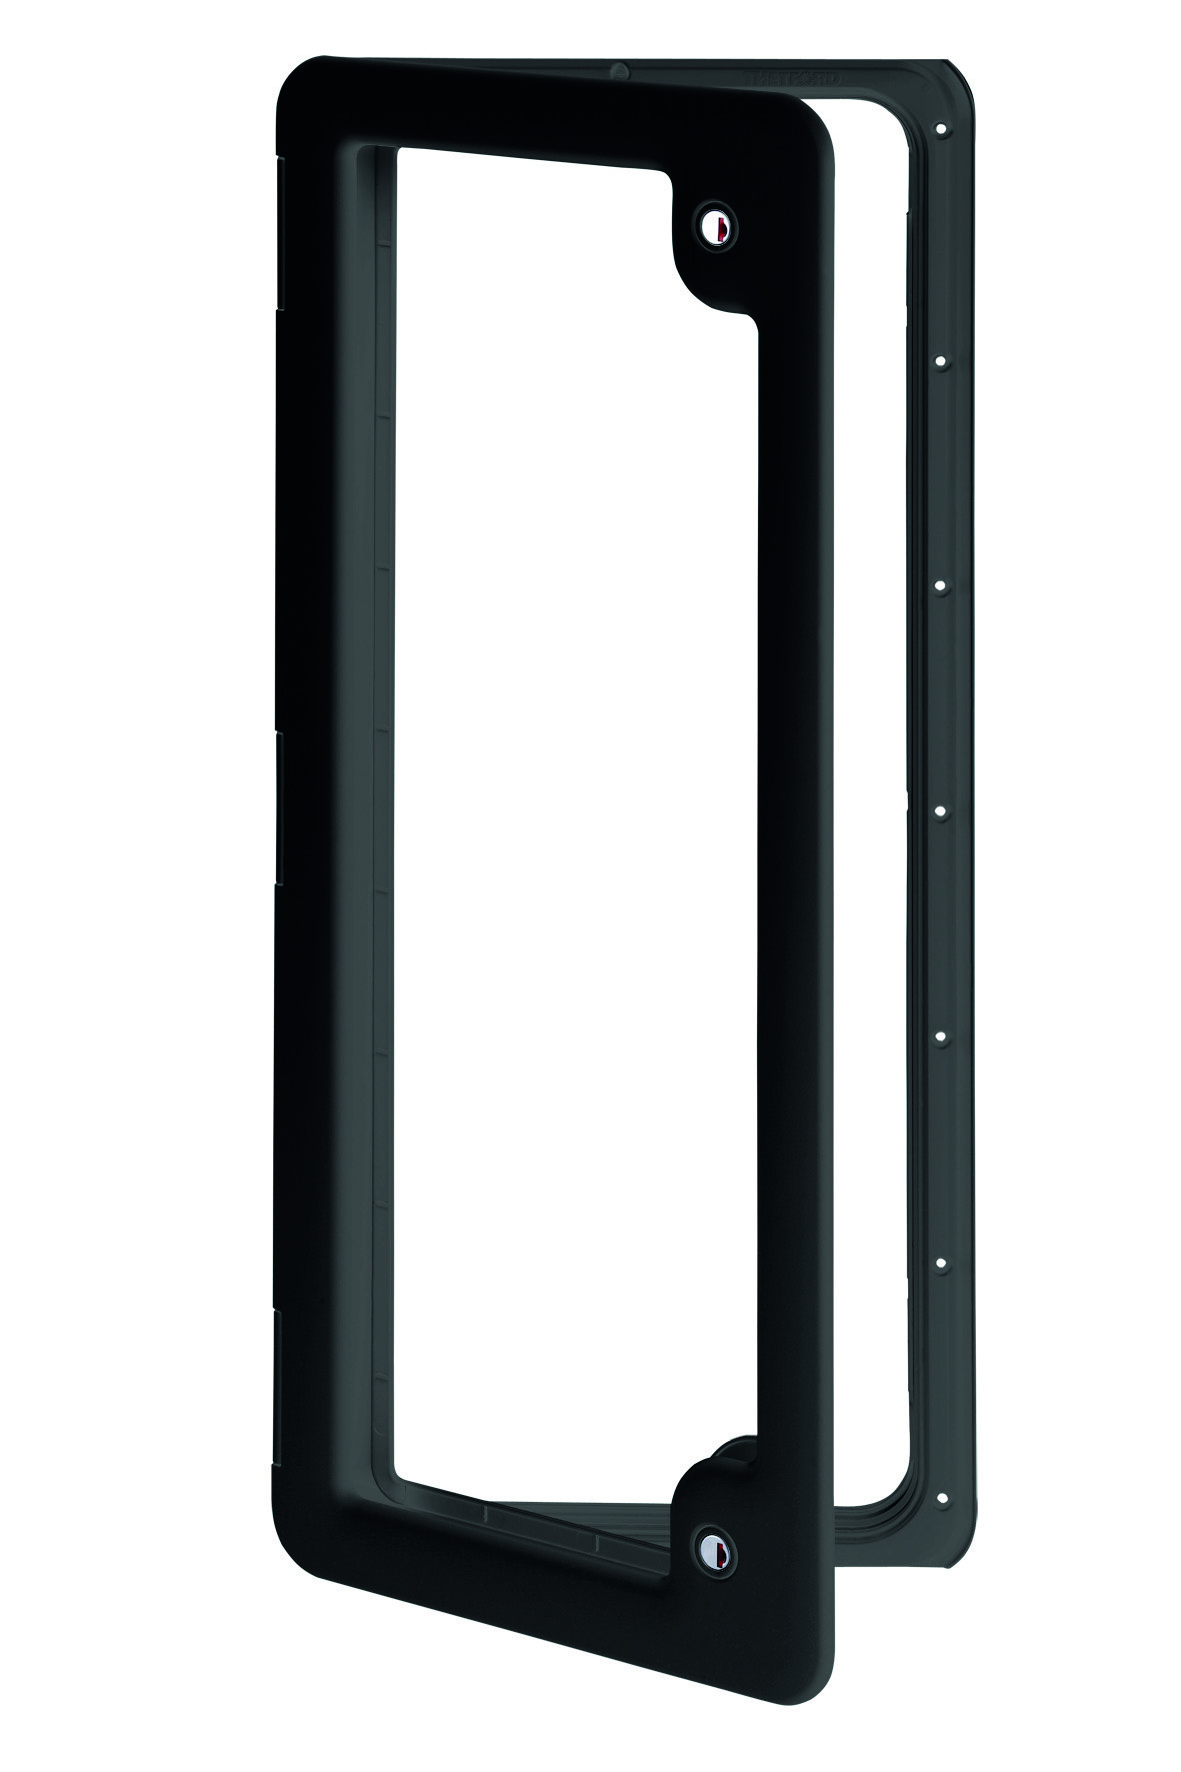 Thetford Service Door 5 Black 335MM X 785MM. 2682427 - Click to enlarge picture.